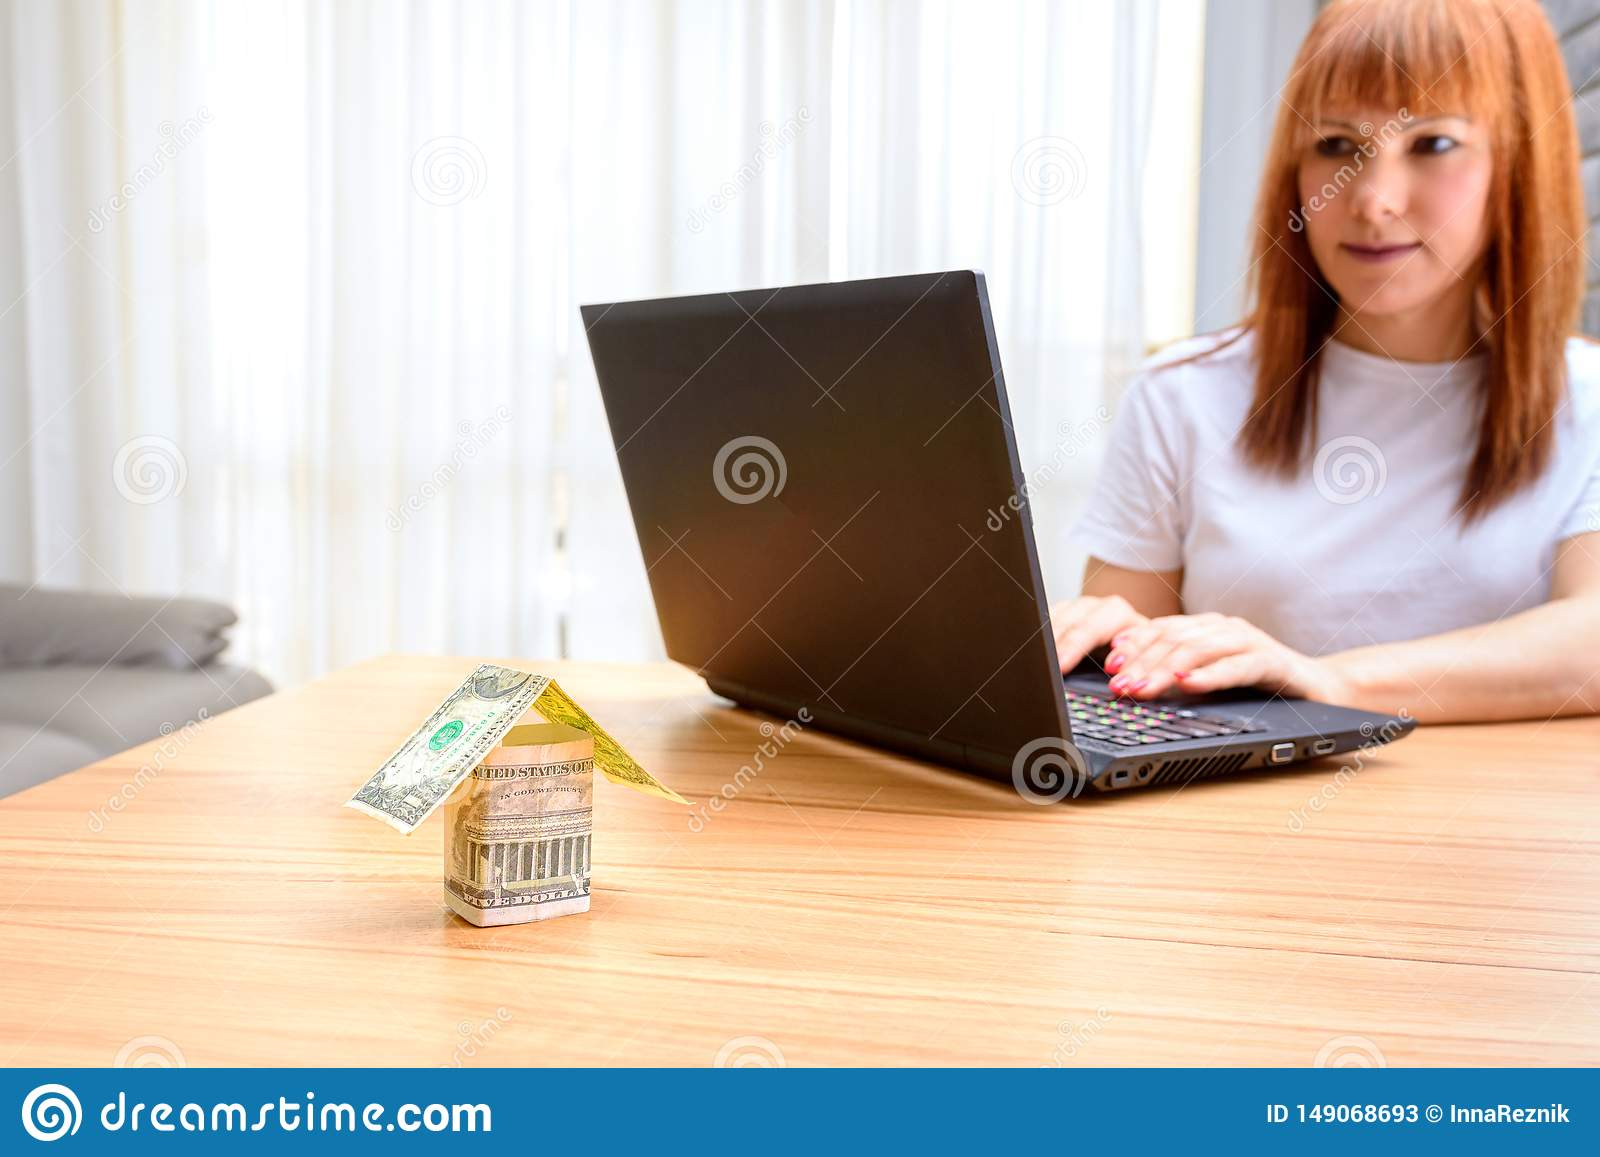 Happy woman using laptop. Concept of buying a home, real estate activity, meeting with advisor, new homes.